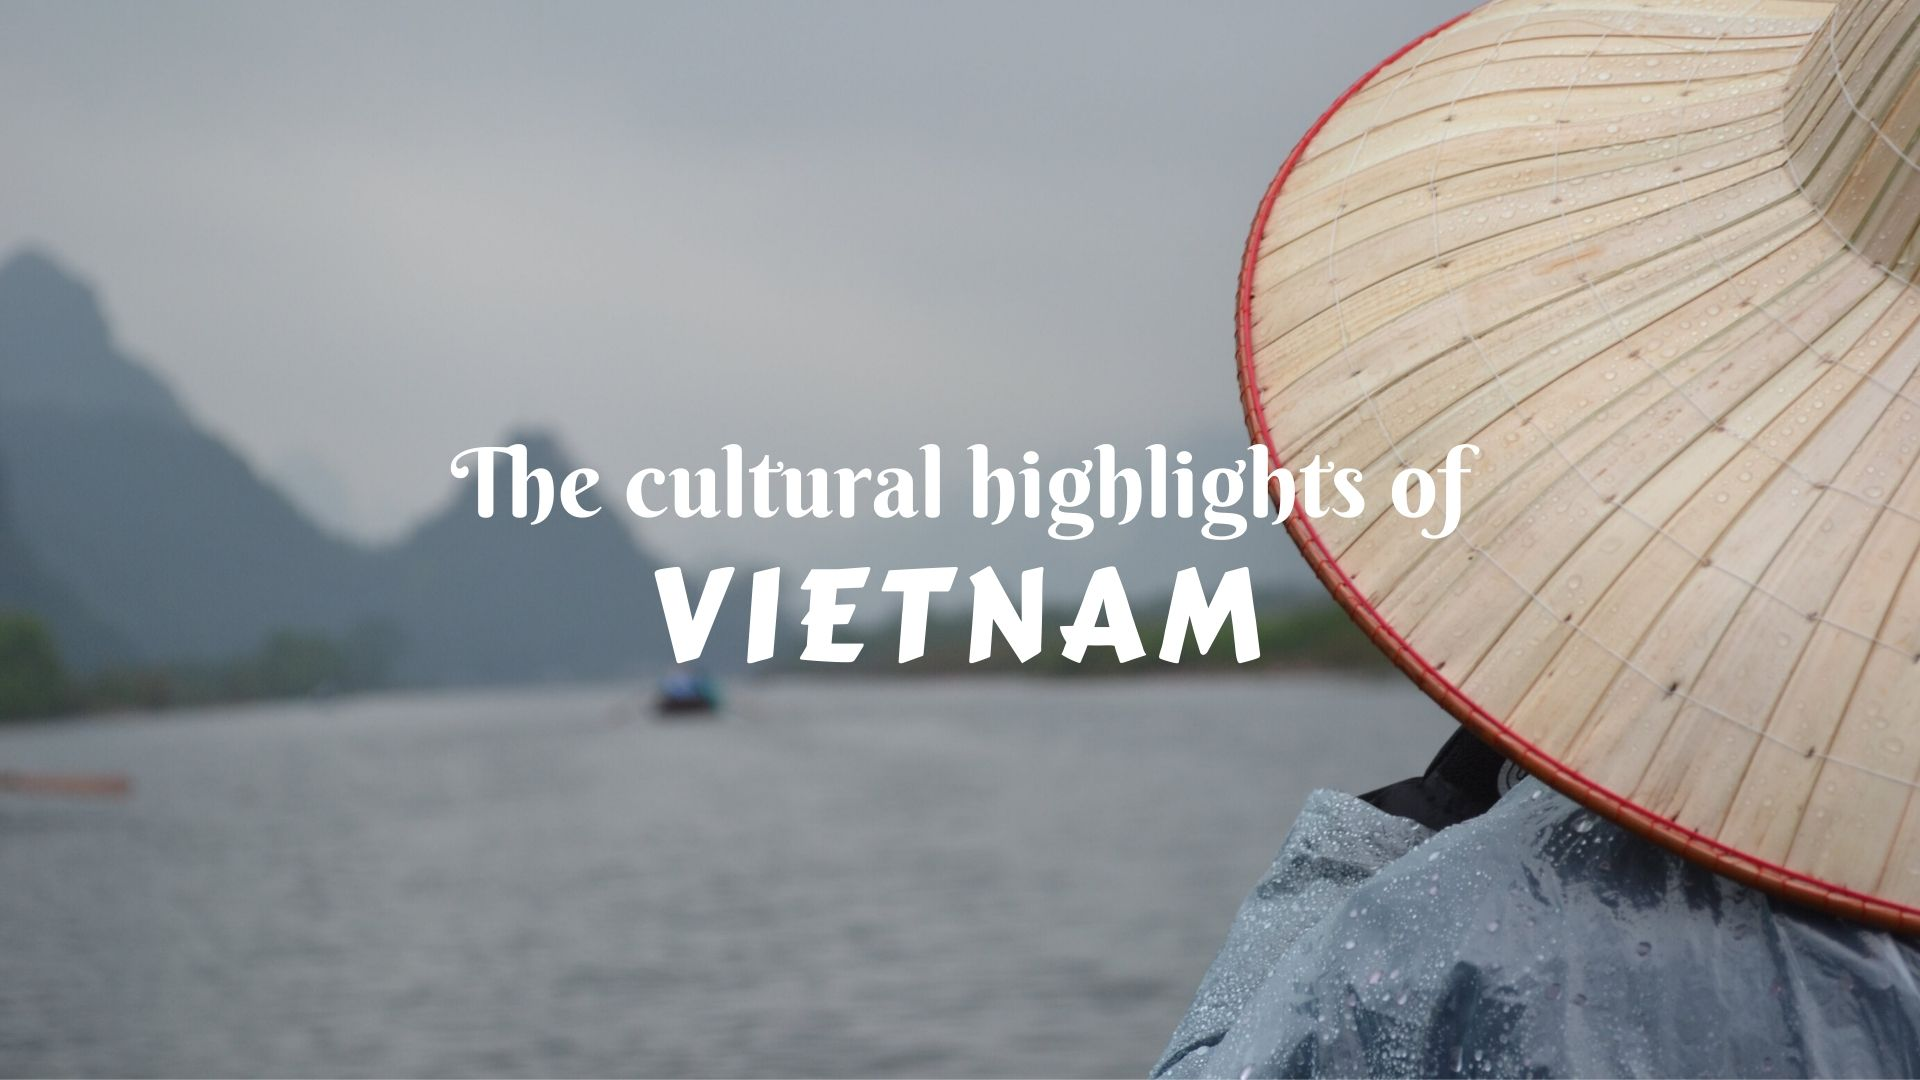 The cultural highlights of Vietnam